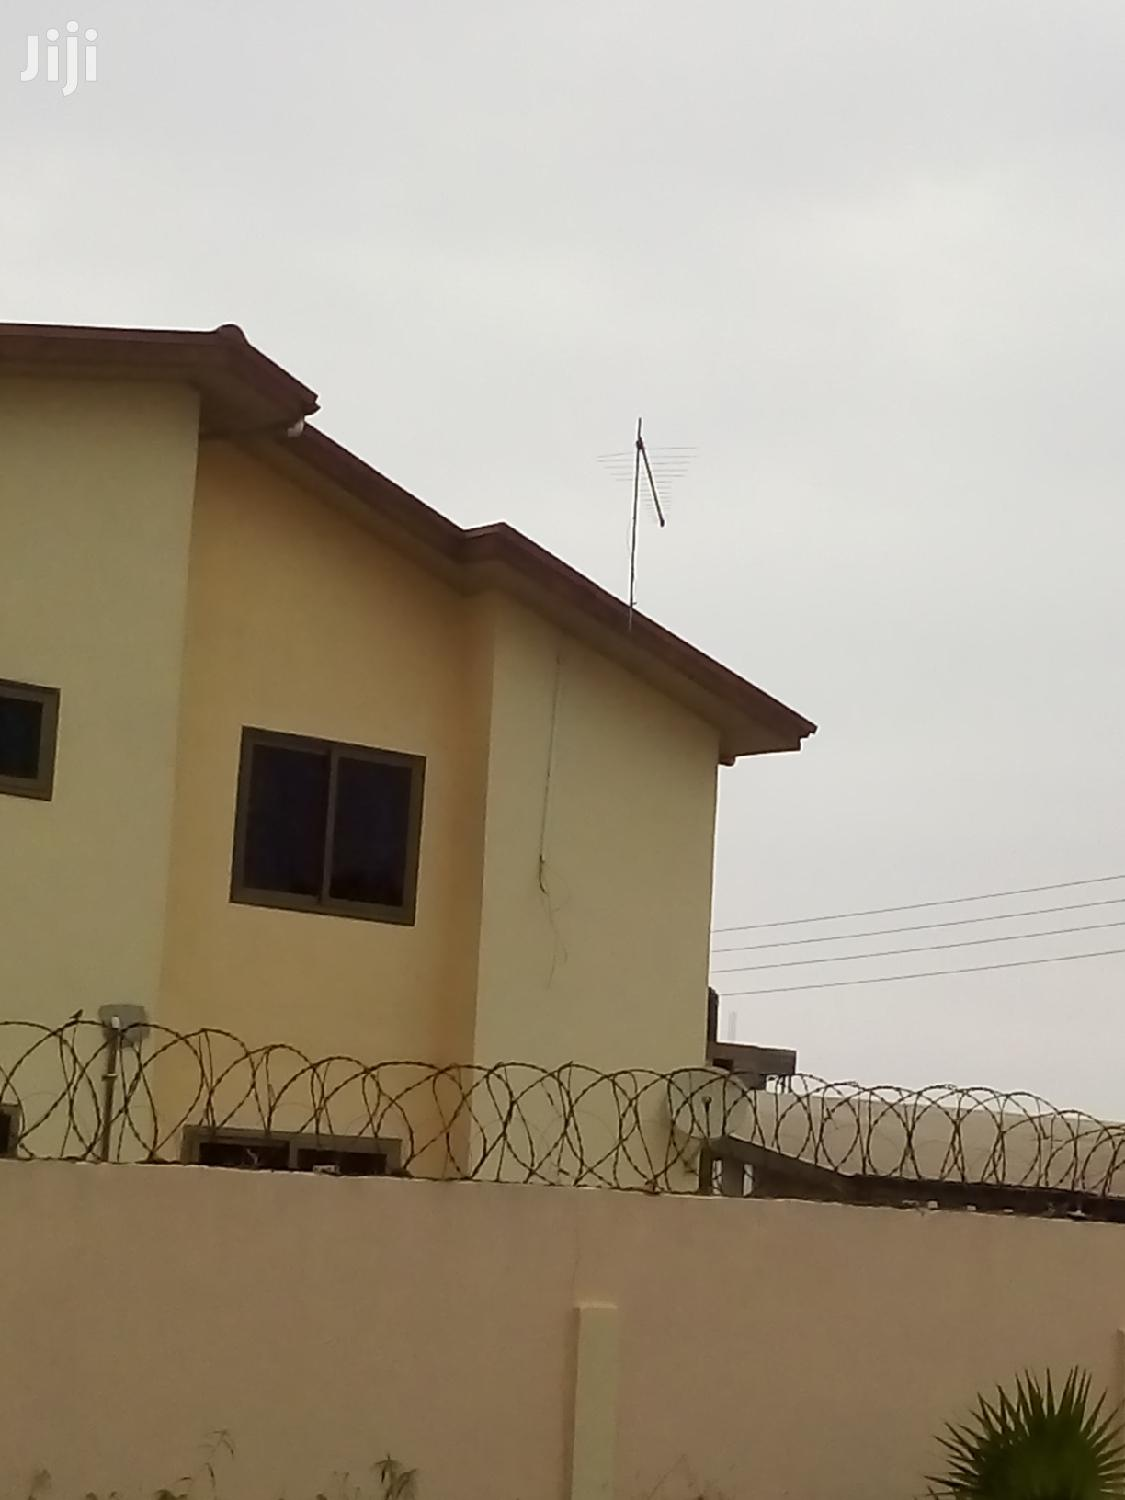 2 Bedrooms Apartment At Abgobga Opposite Shell Fuel Station